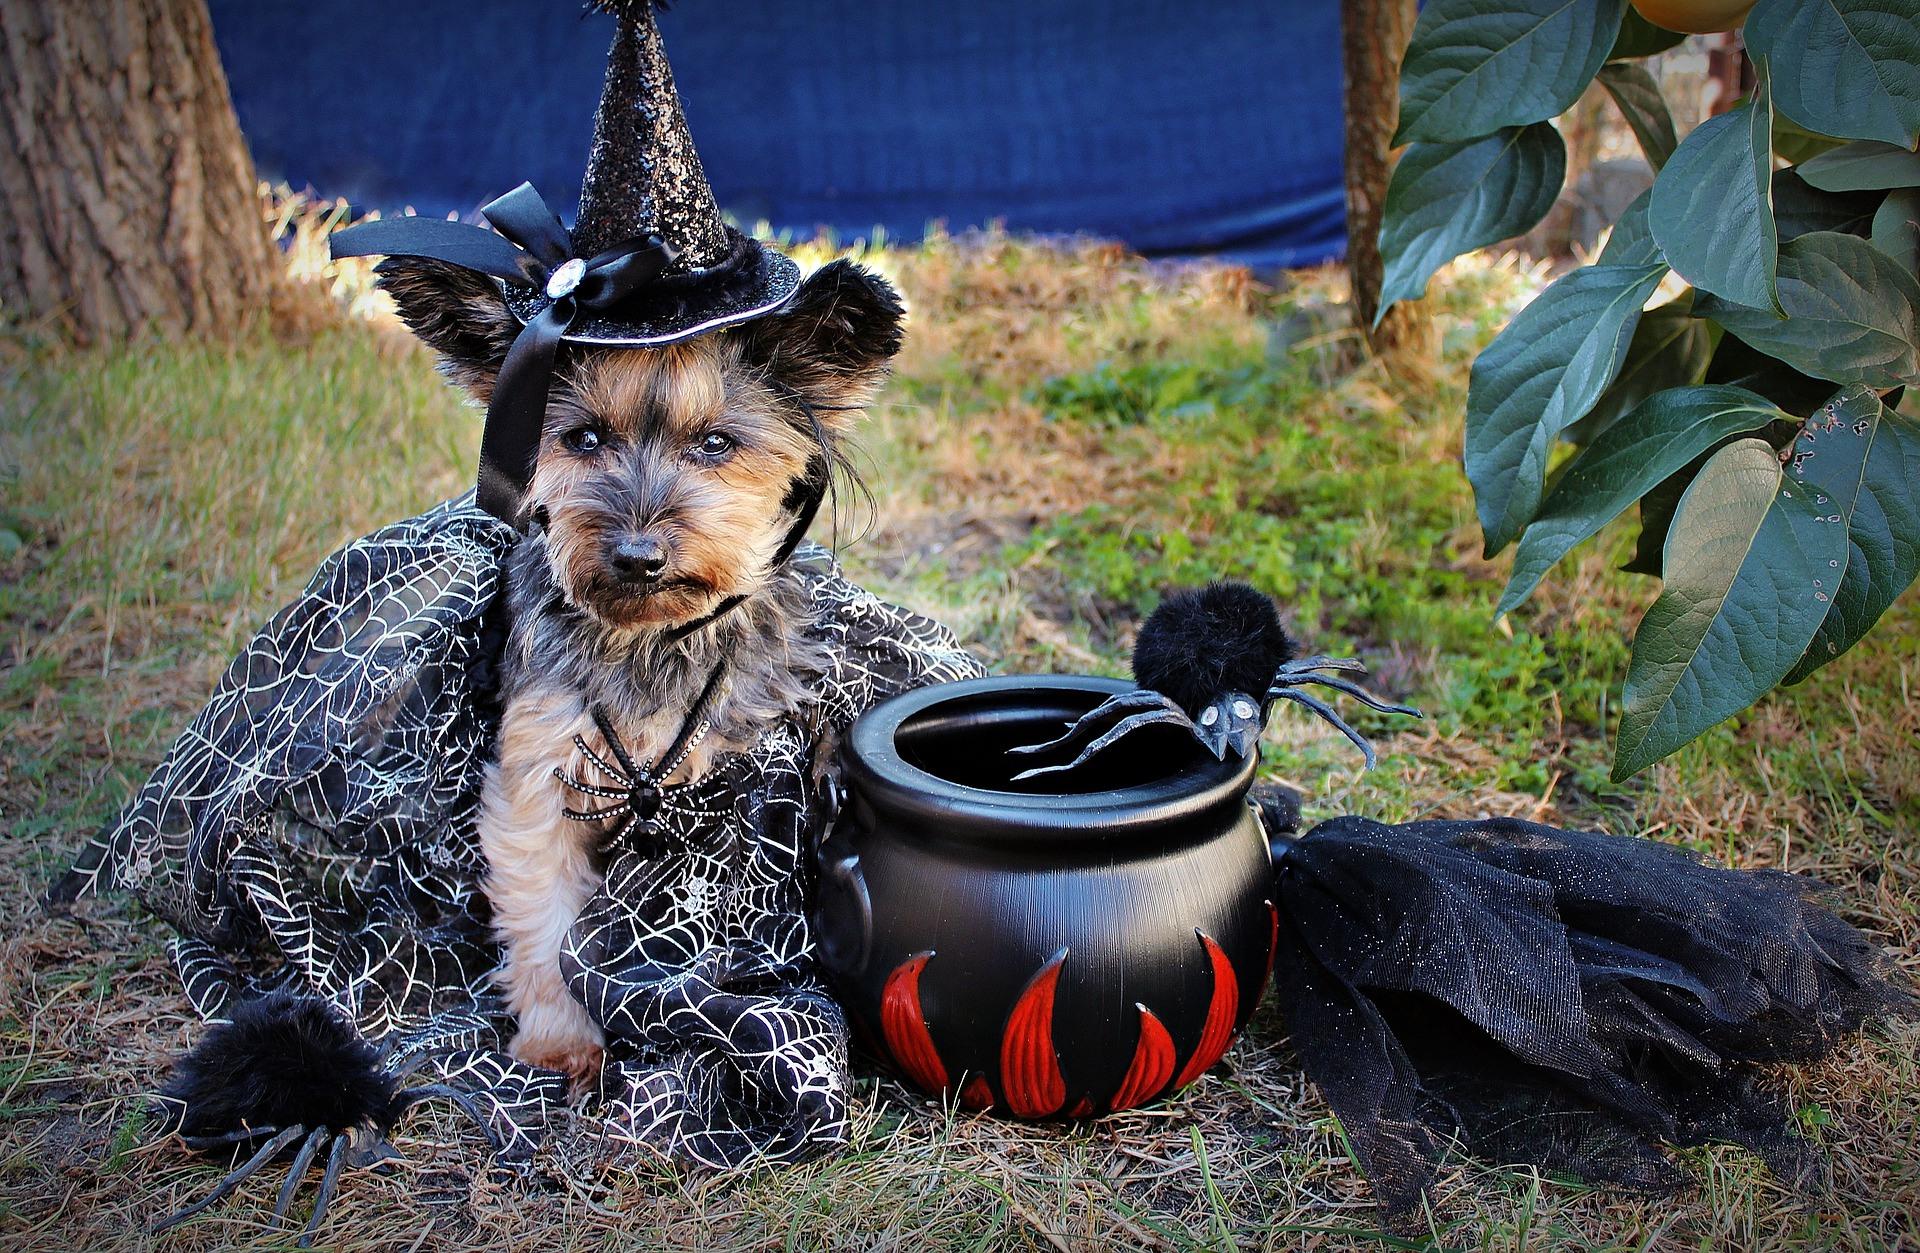 Dog Dressed as a Witch for Halloween